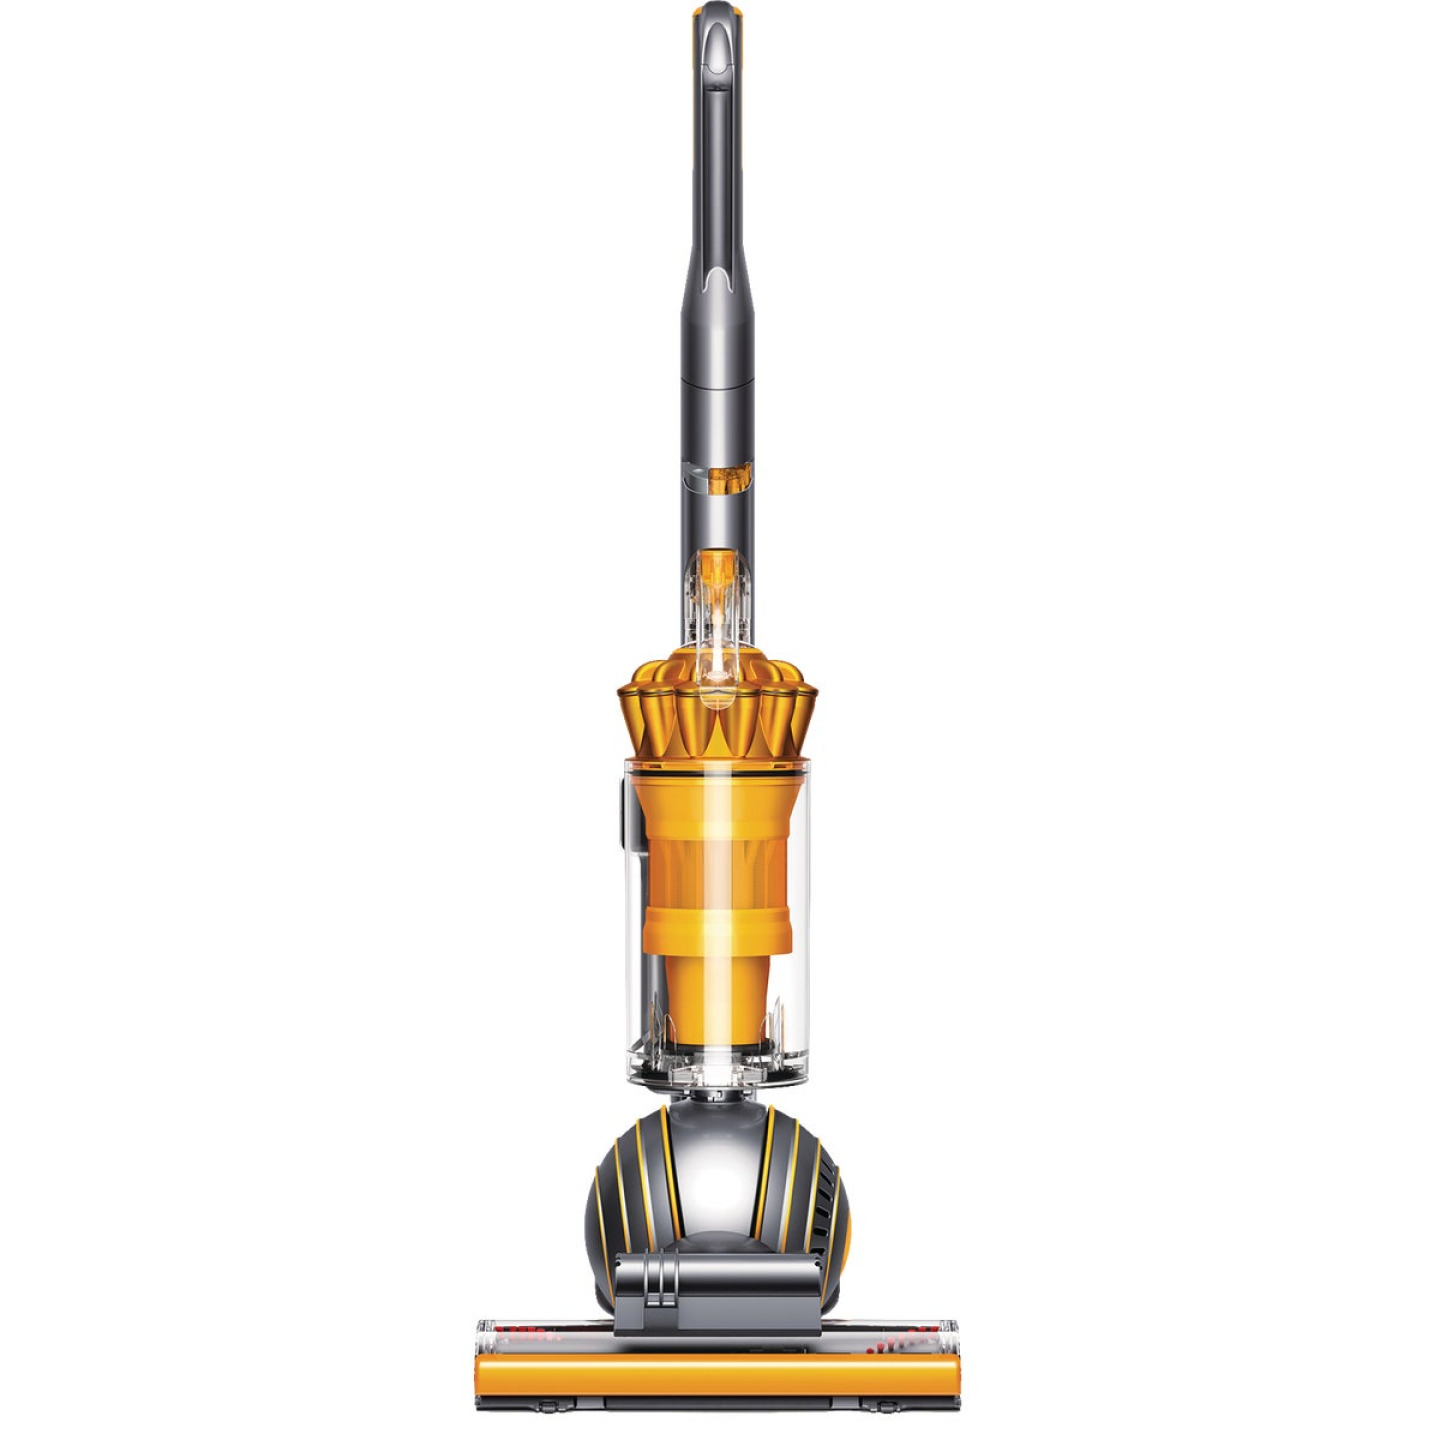 Dyson Ball Multi Floor 2 Bagless Upright Vacuum Cleaner Image 1